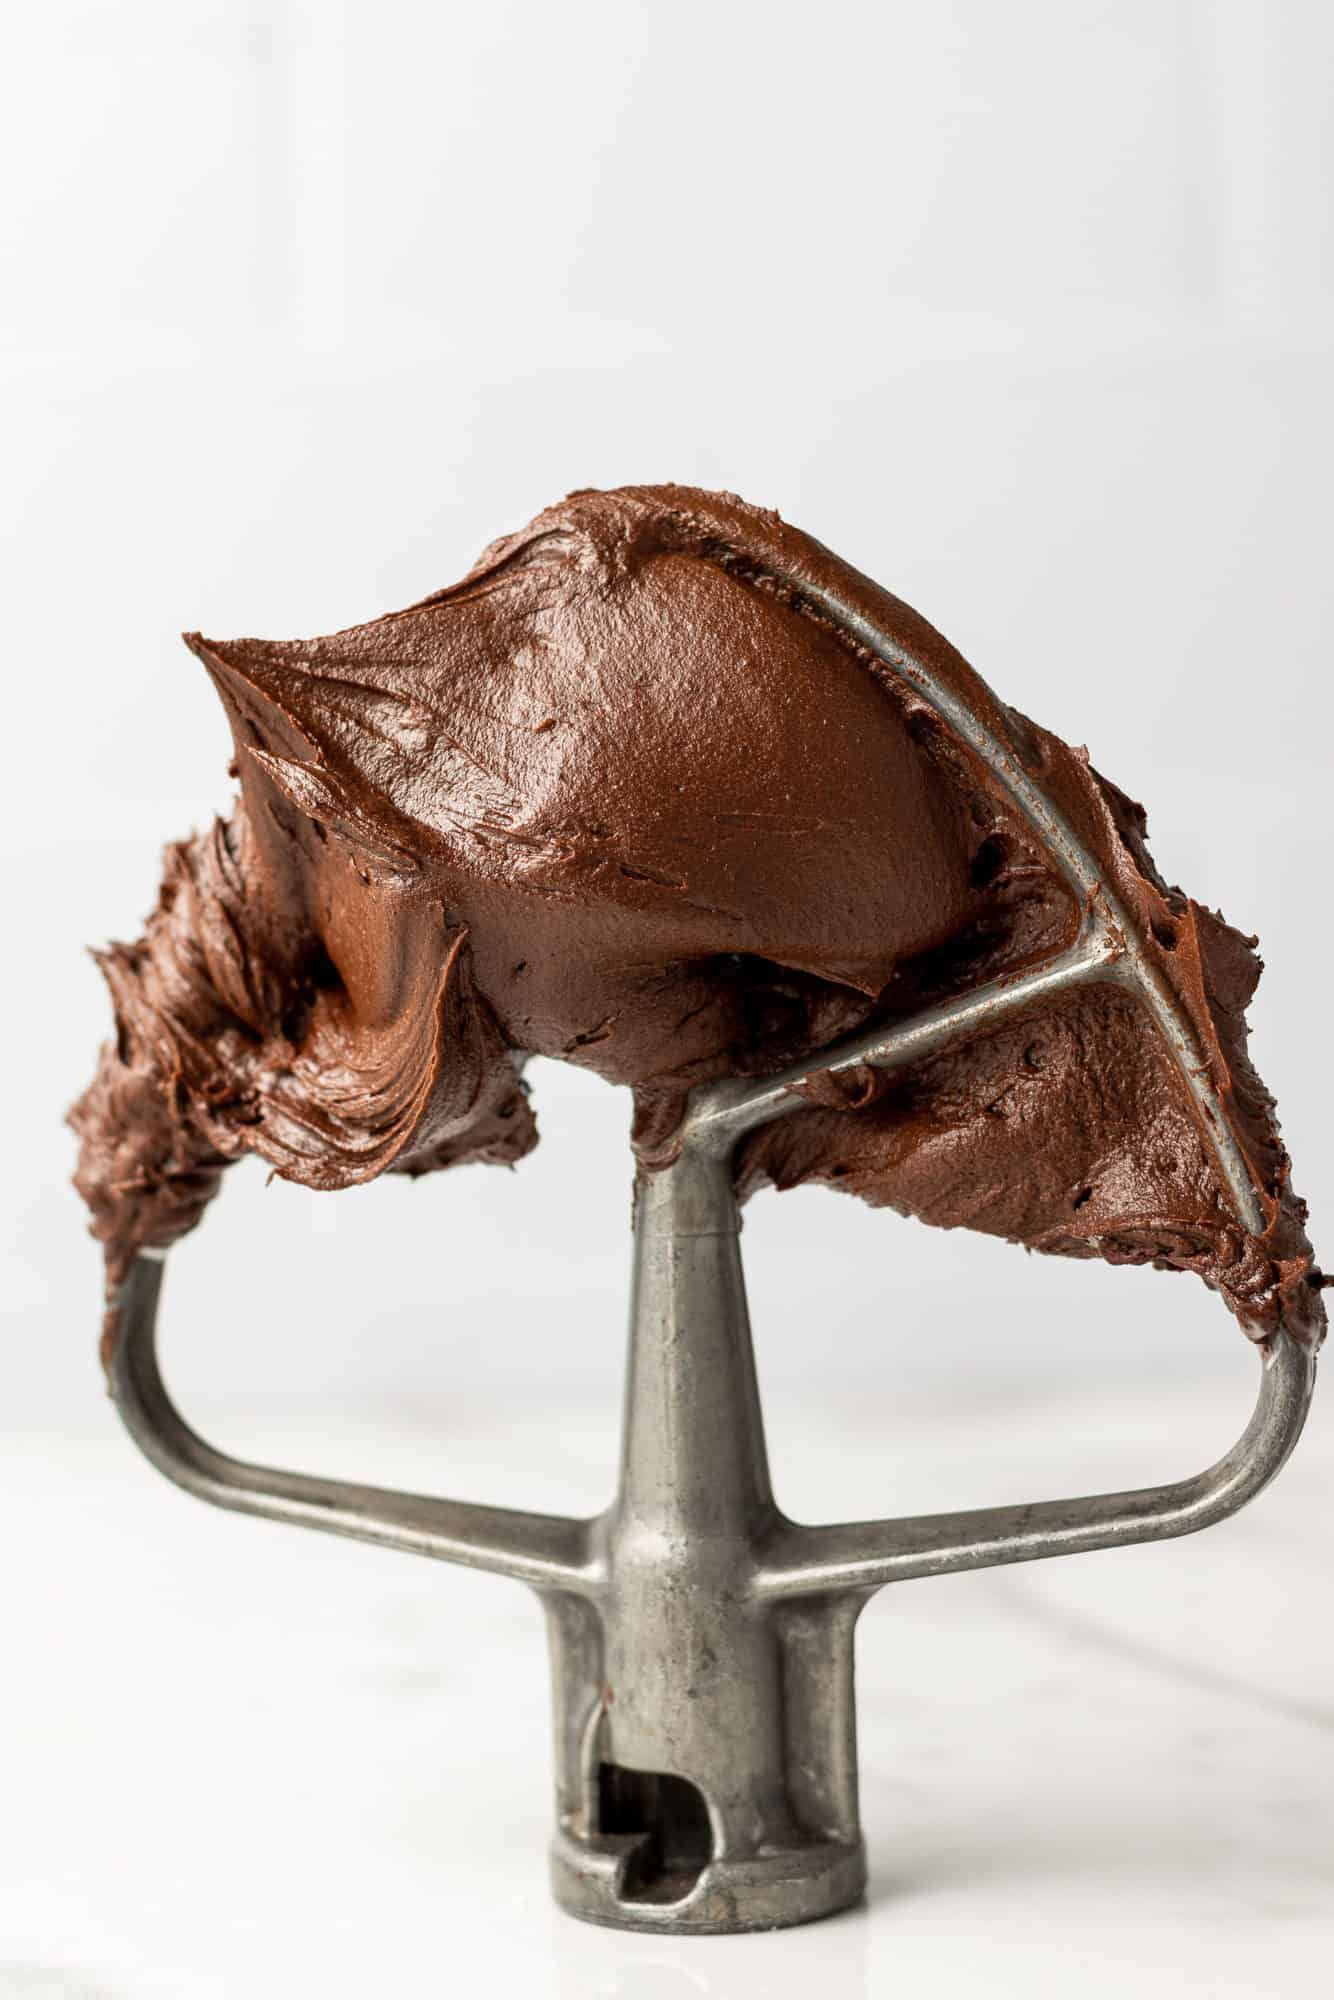 Chocolate buttercream frosting on a mixer beater.